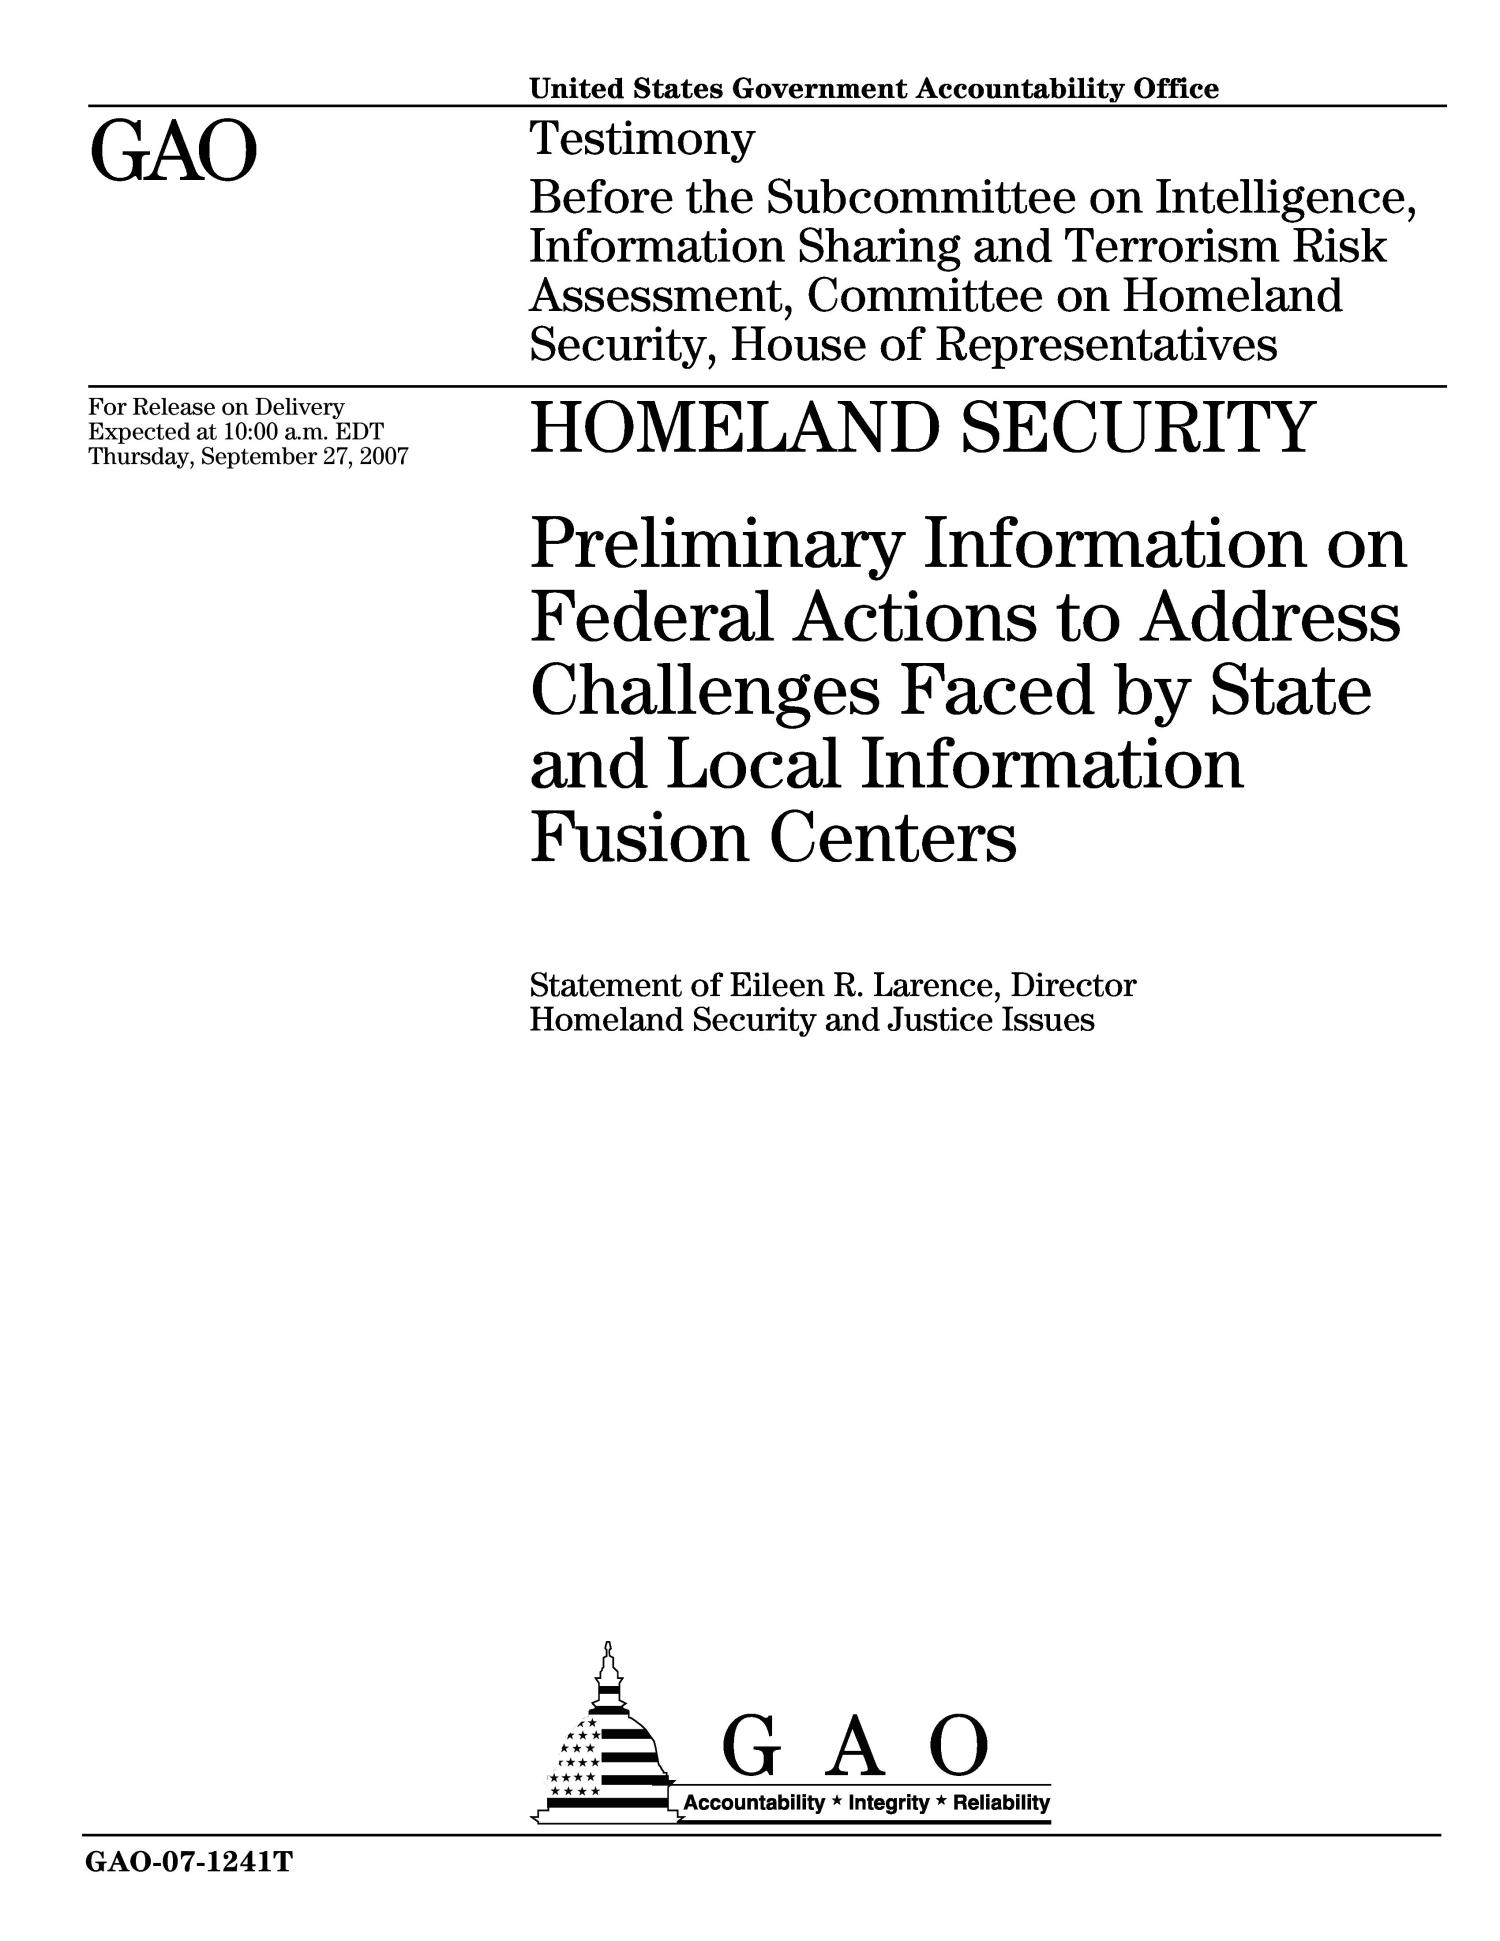 Homeland Security: Preliminary Information on Federal Actions to Address Challenges Faced by State and Local Information Fusion Centers                                                                                                      [Sequence #]: 1 of 17